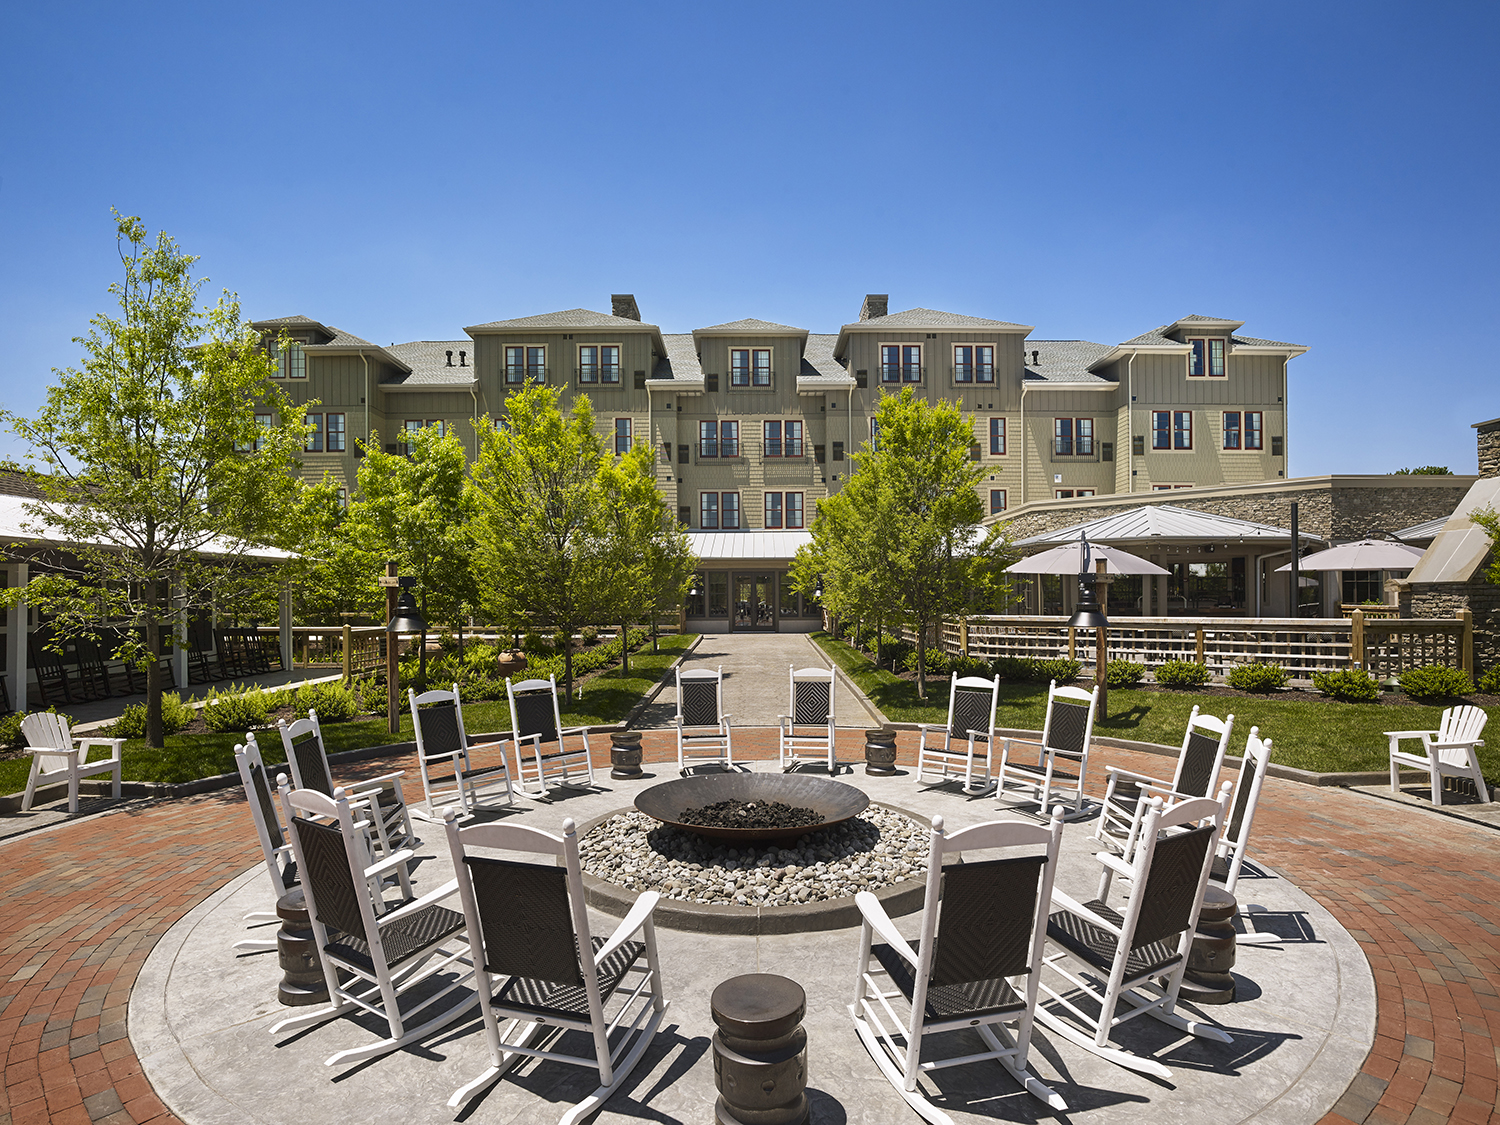 The Inn features luxurious guest rooms and suites, two locally inspired restaurants, a full service spa and salon, and an array of versatile event spaces.